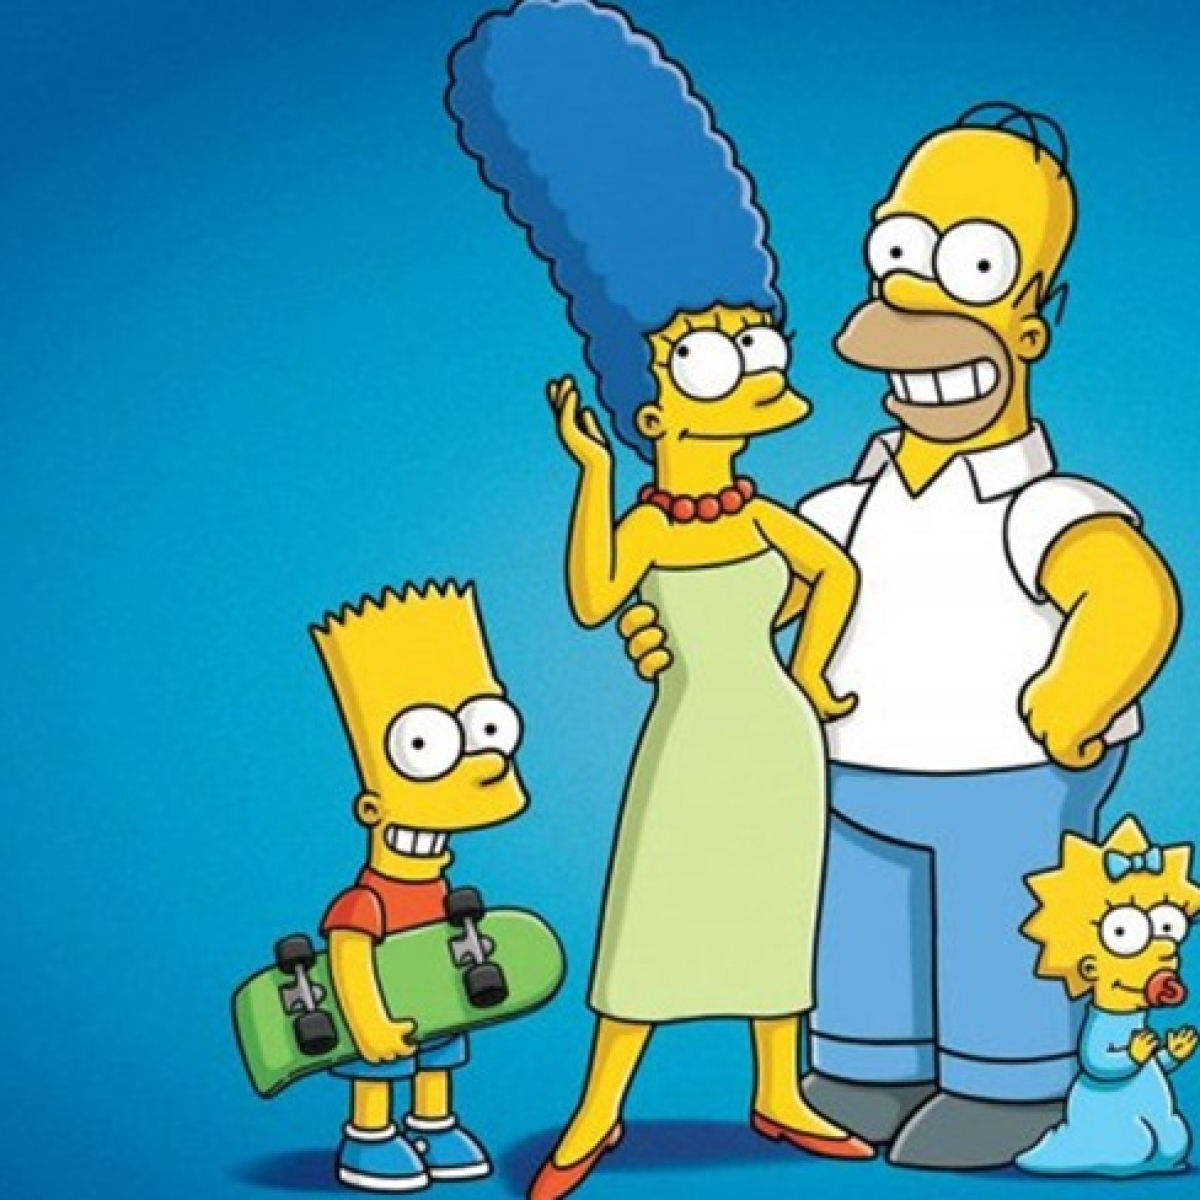 'The Simpsons' to stop having white actors dubbing for non-white characters